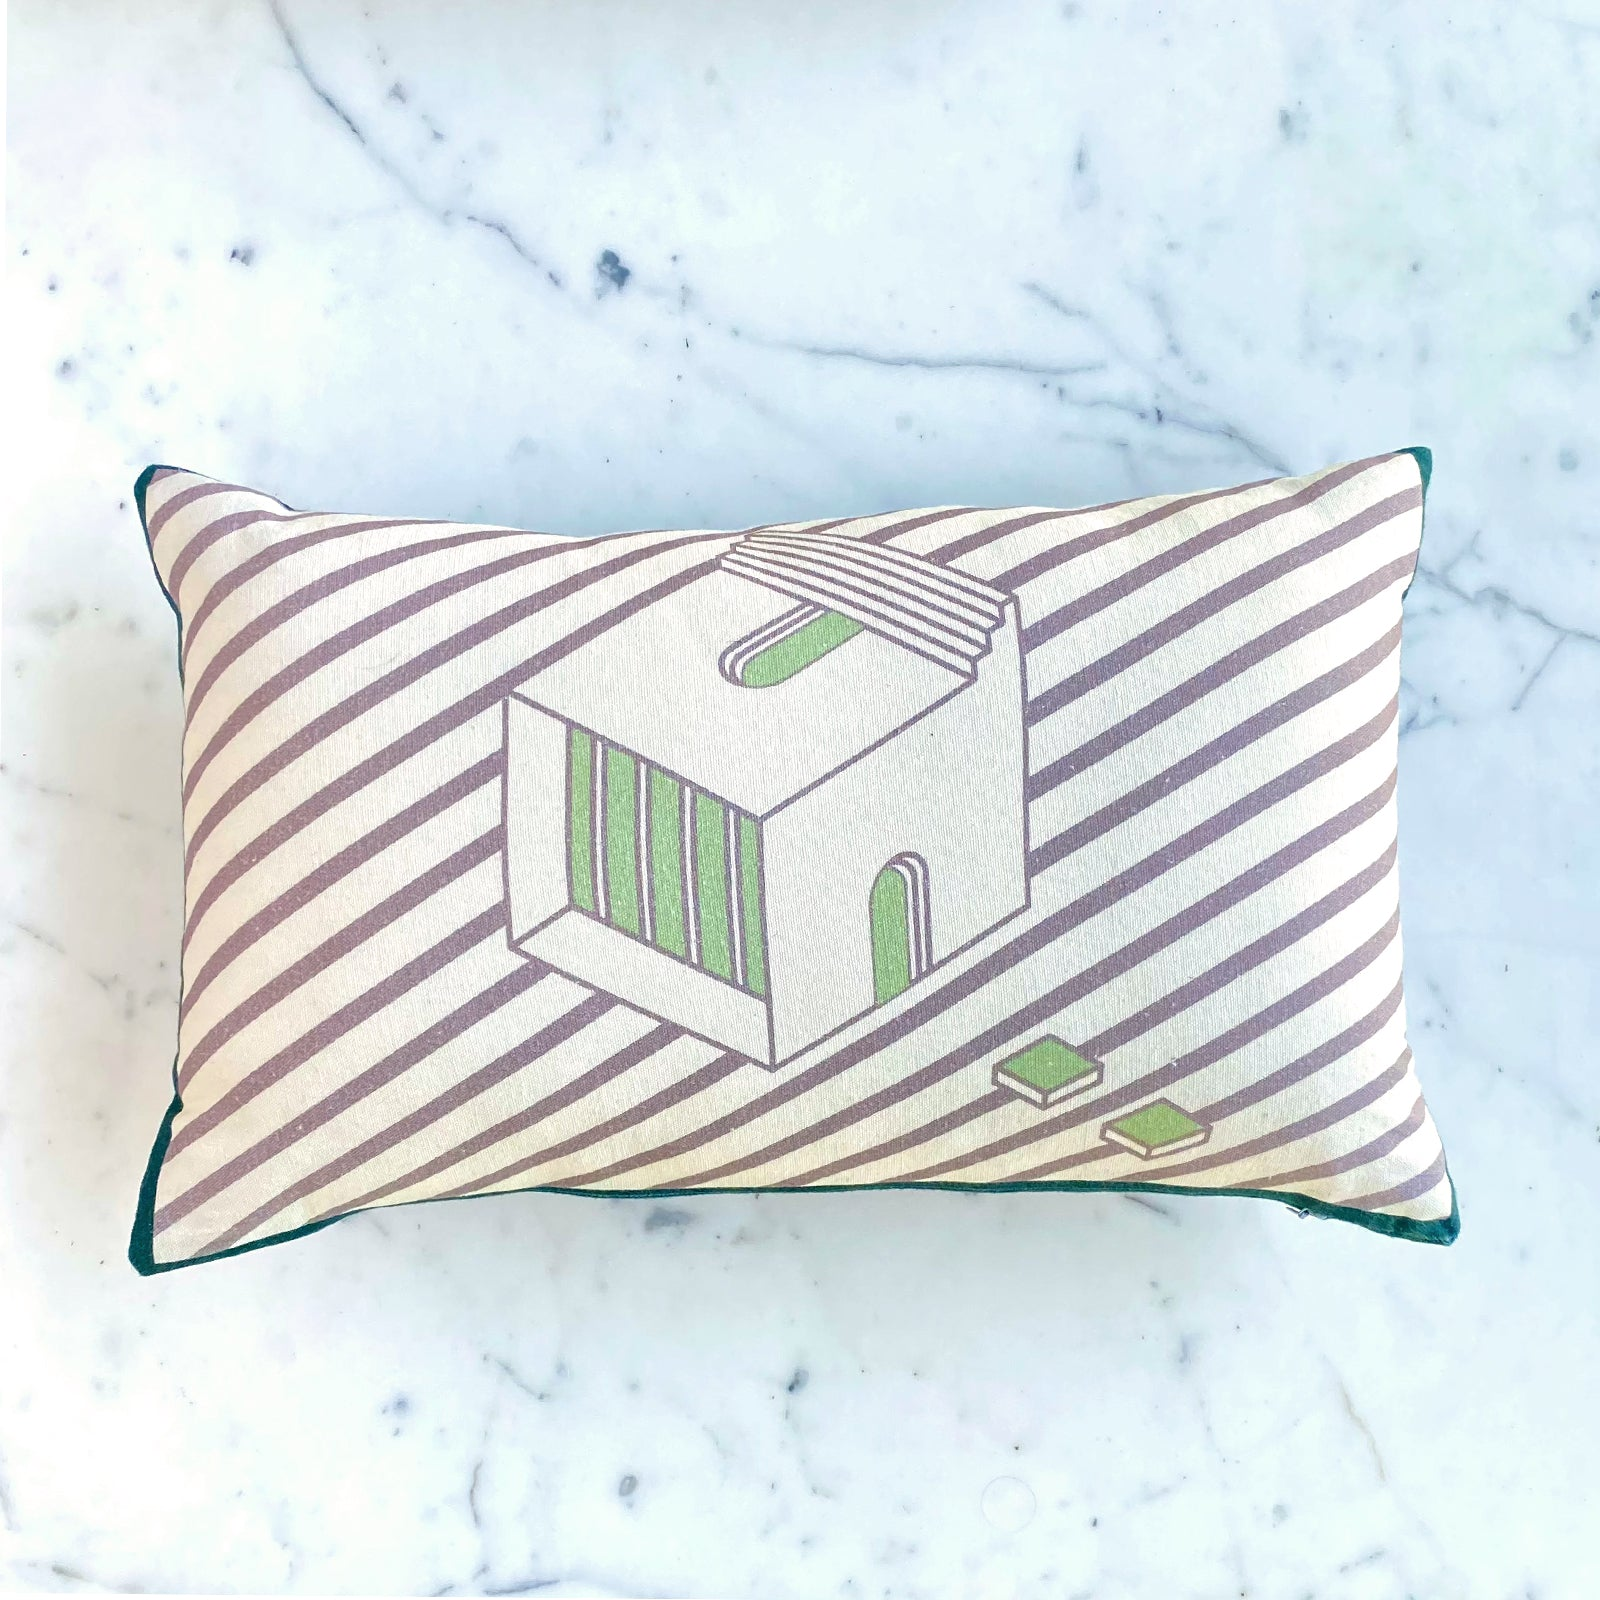 Green Lumbar Cushion Cover. 100% Cotton. Borderline PLAY